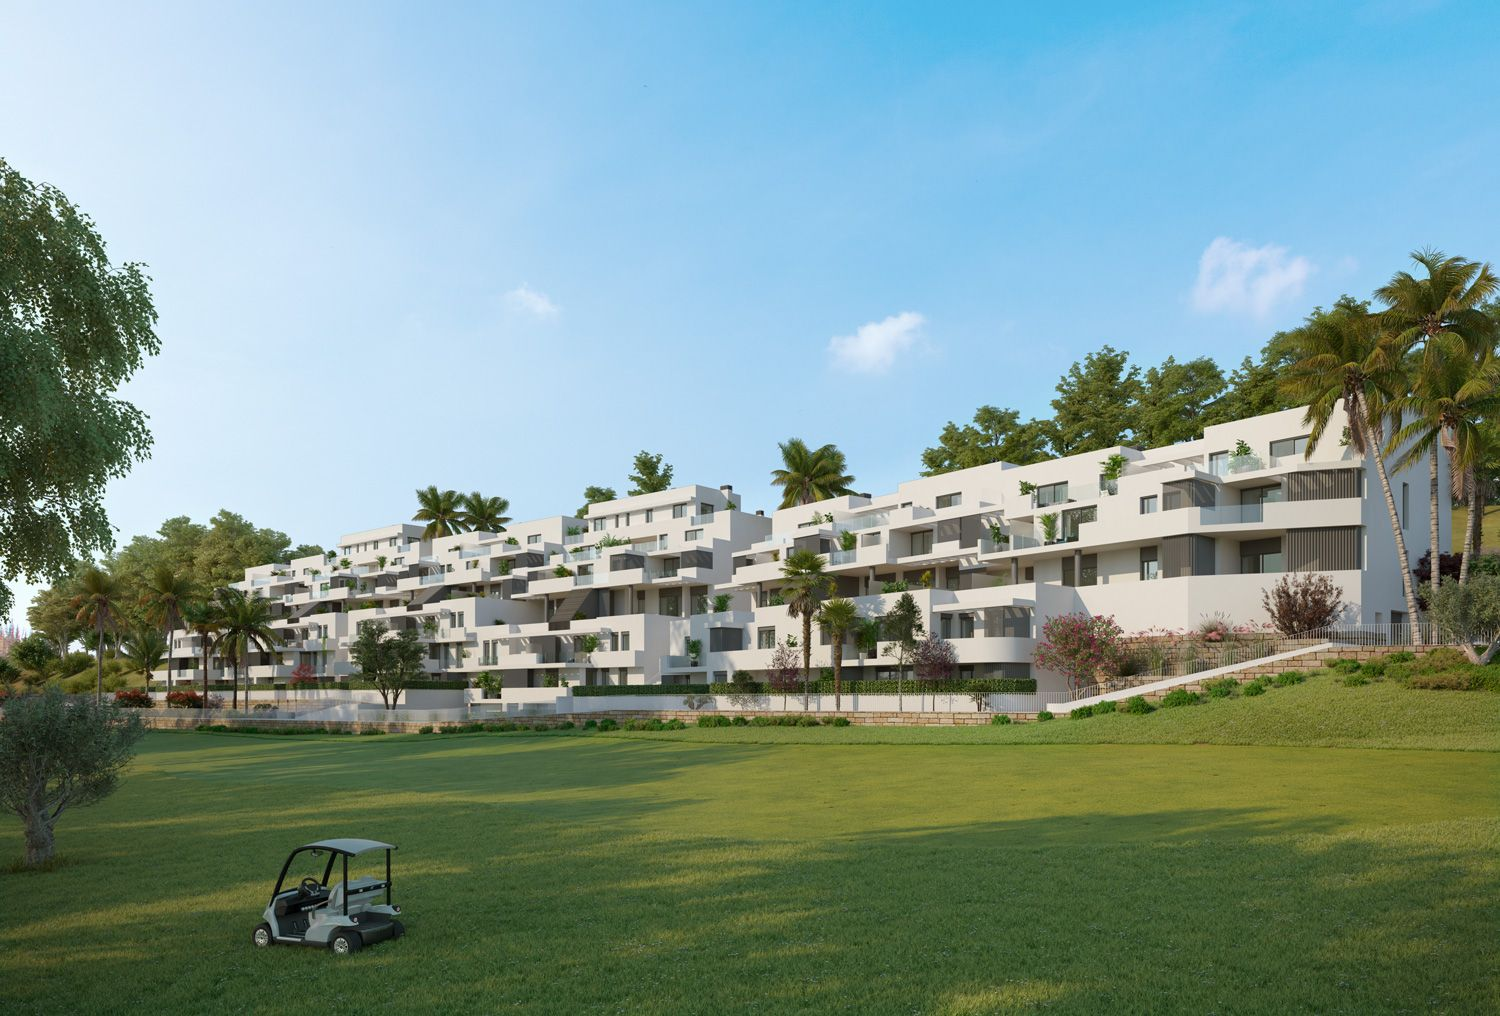 Apartments with views over golf courses in Estepona 13